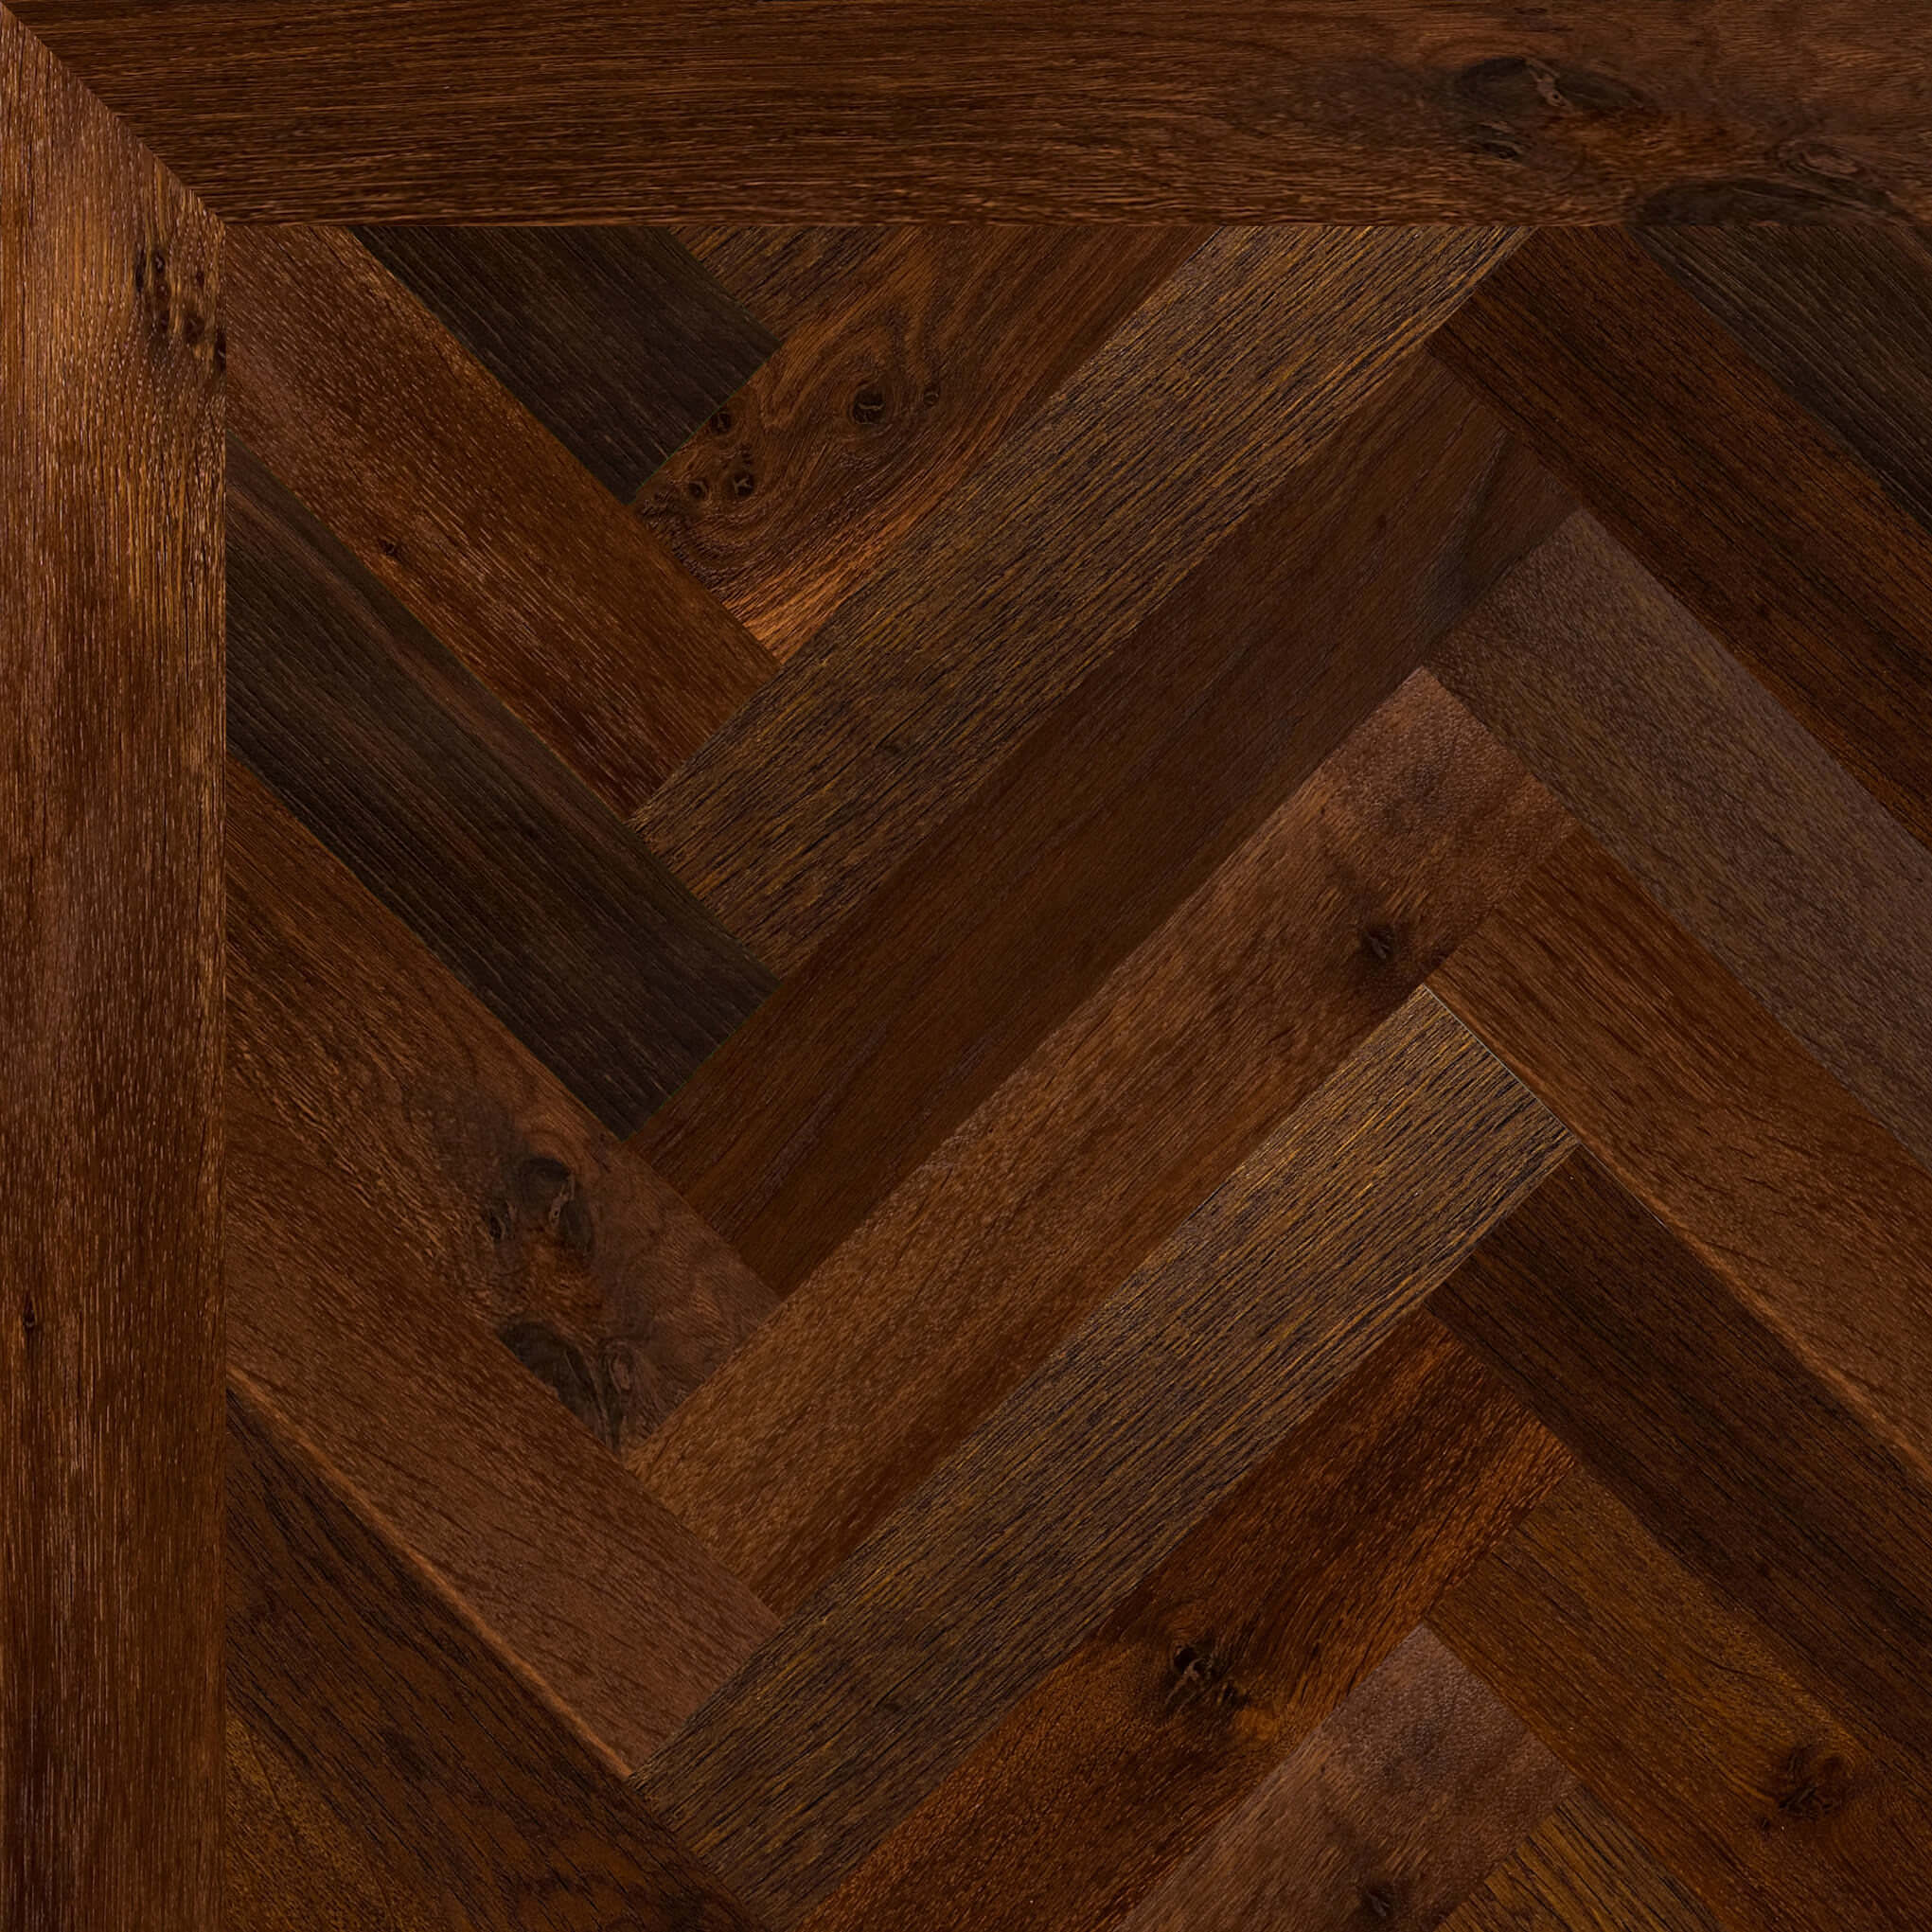 French Oak Rustic Thermo Treated Baked Parquet Battens